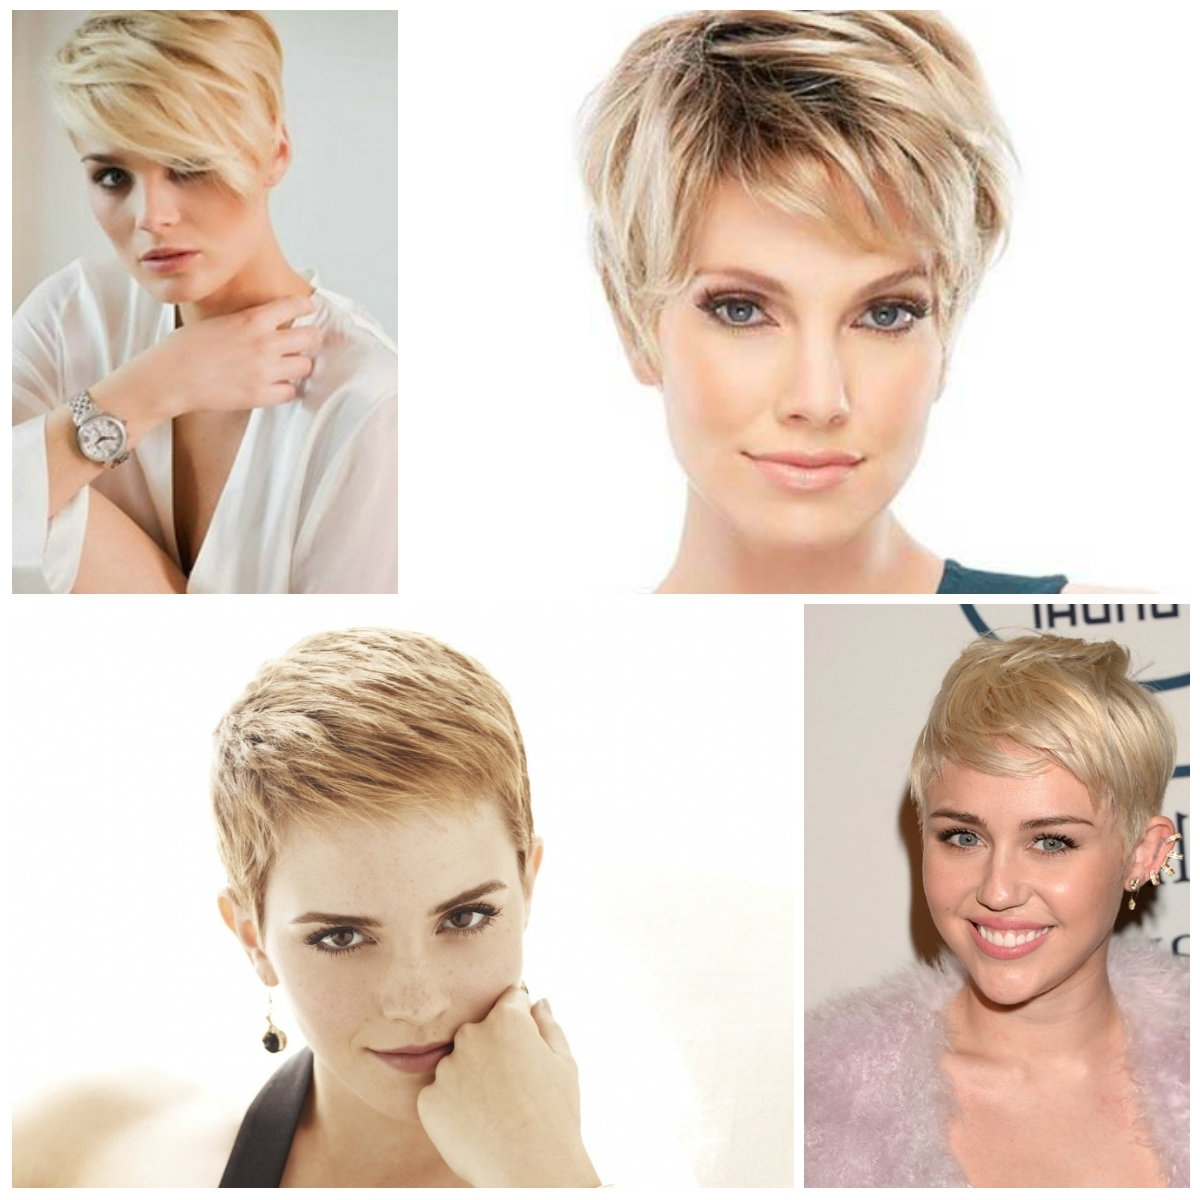 Subtle Blonde Pixie Hairstyles – Haircuts And Hairstyles For 2017 With Regard To Most Recent Short Blonde Pixie Hairstyles (View 7 of 15)